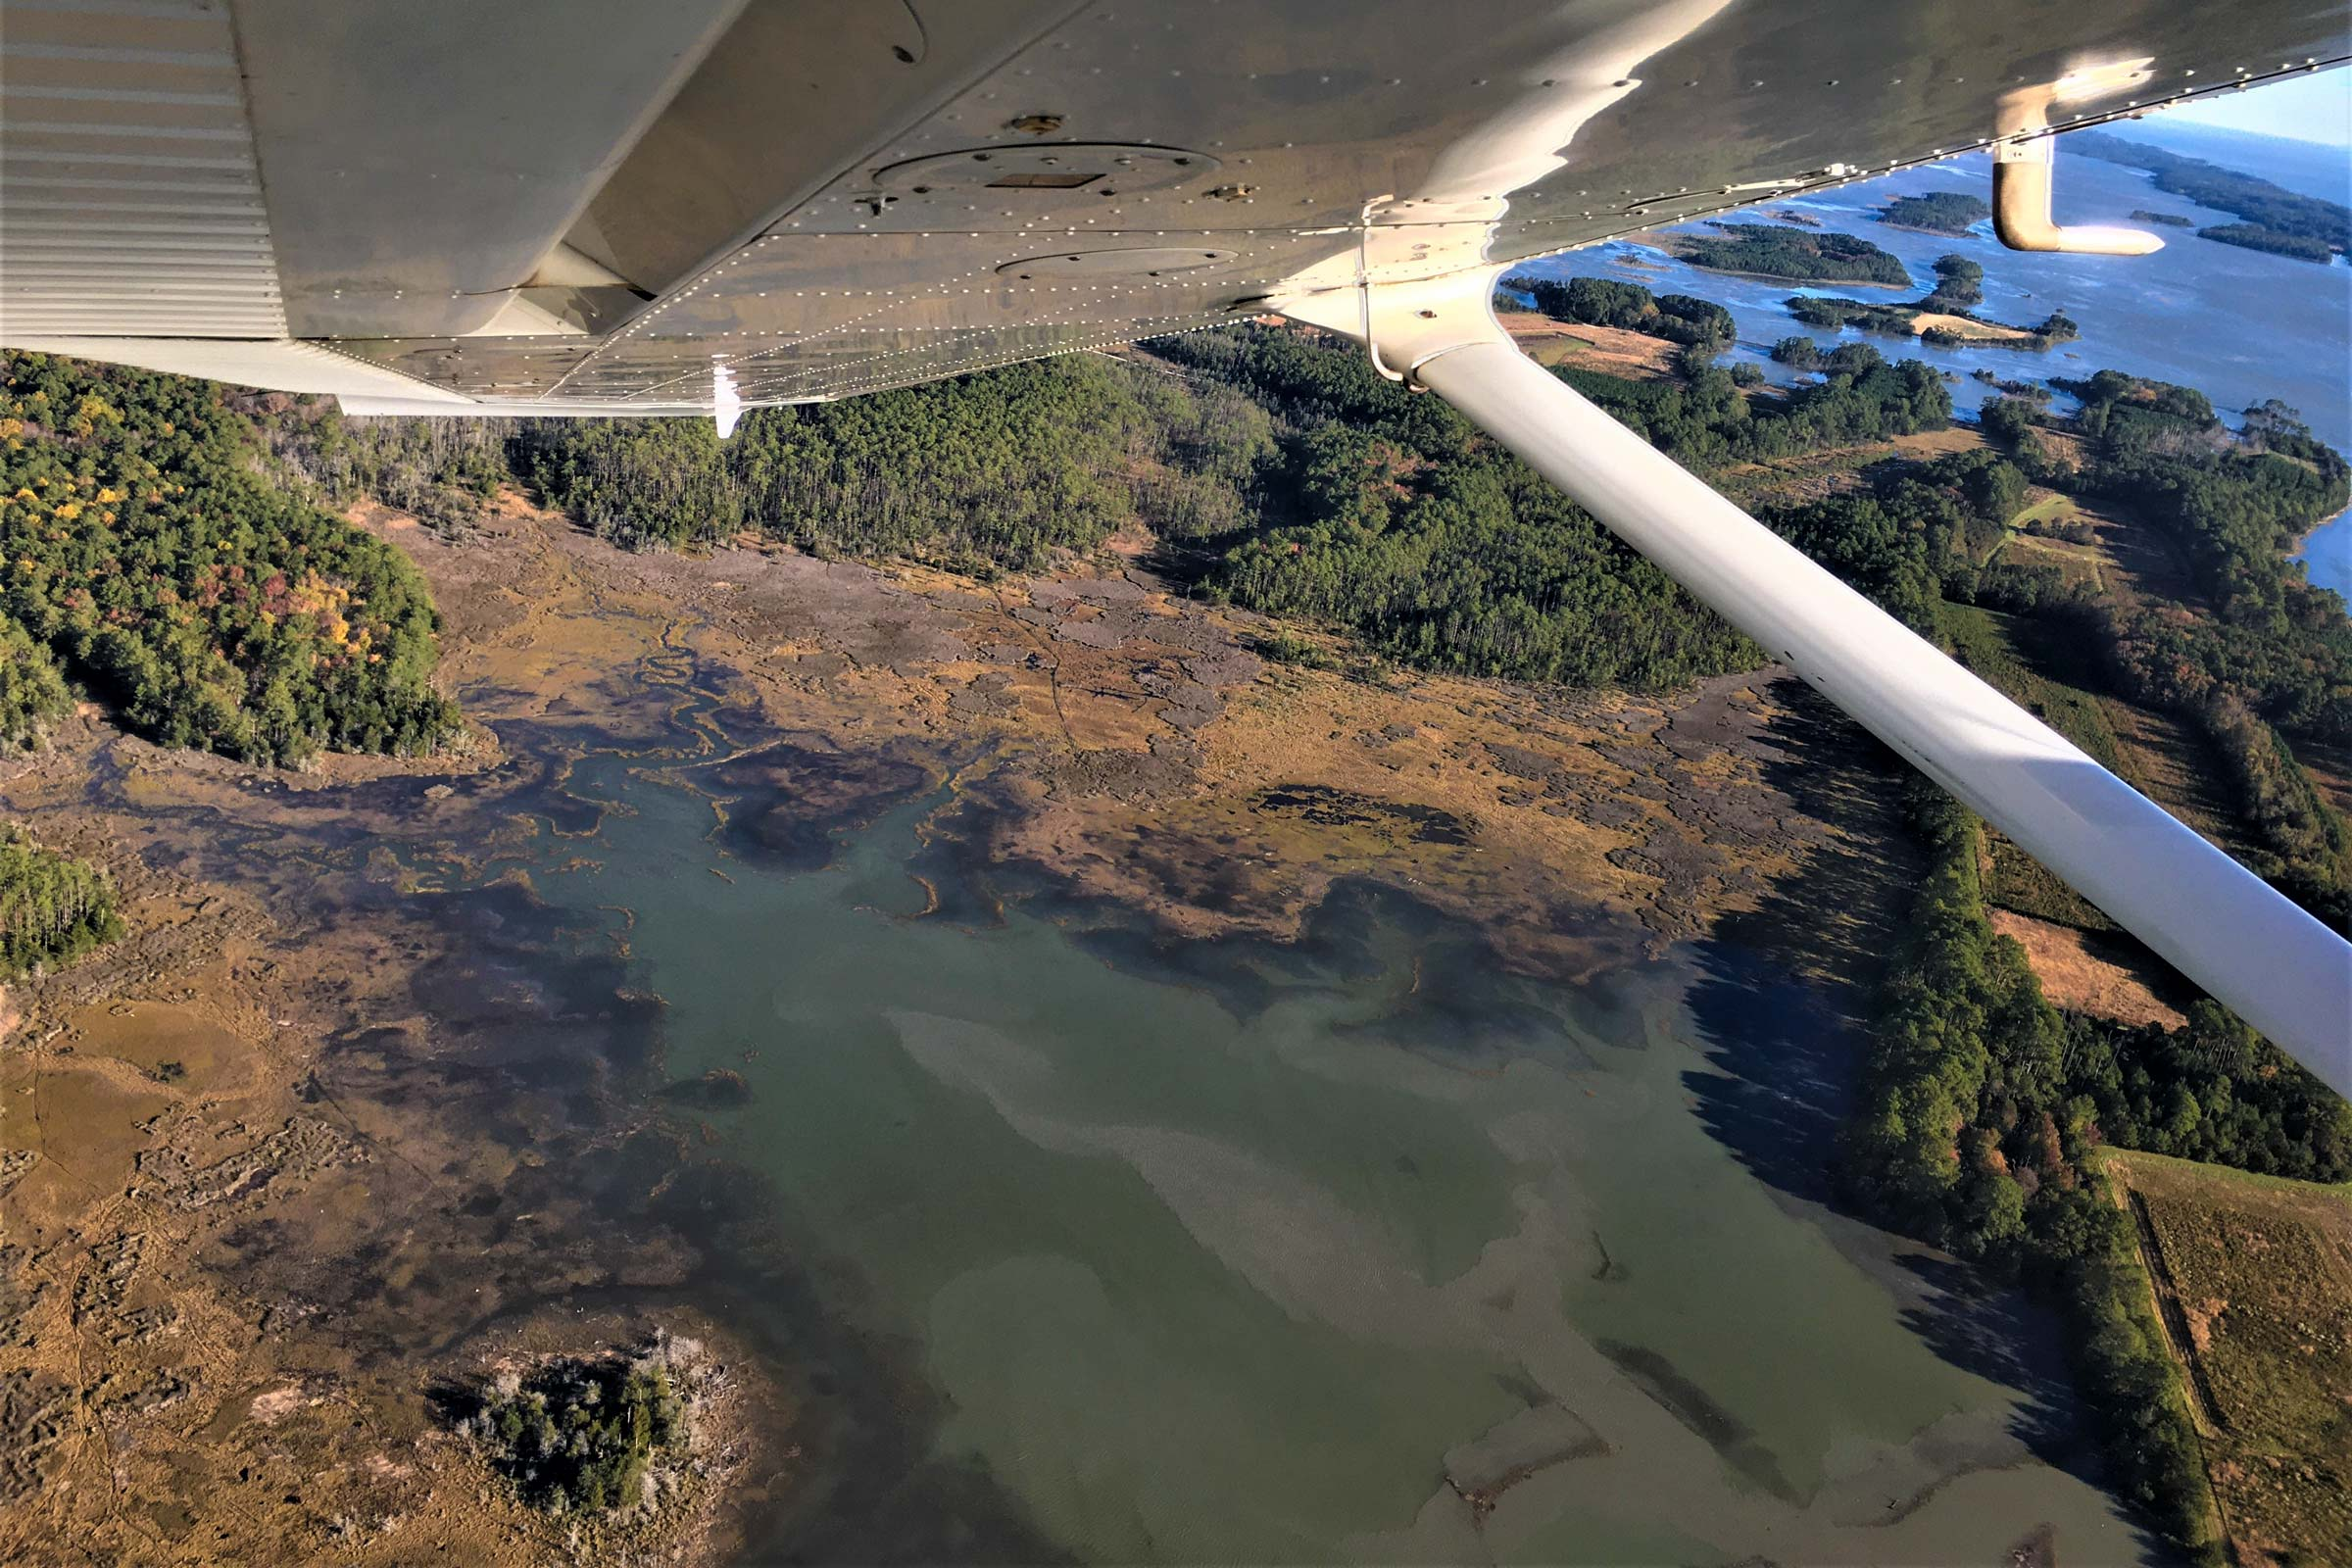 Graying trees and thinning forests encircle a site where UVA researchers have documented changes in marsh elevation for more than 20 years. The formation of these ghost forests indicates rising sea levels and marsh migration inland.